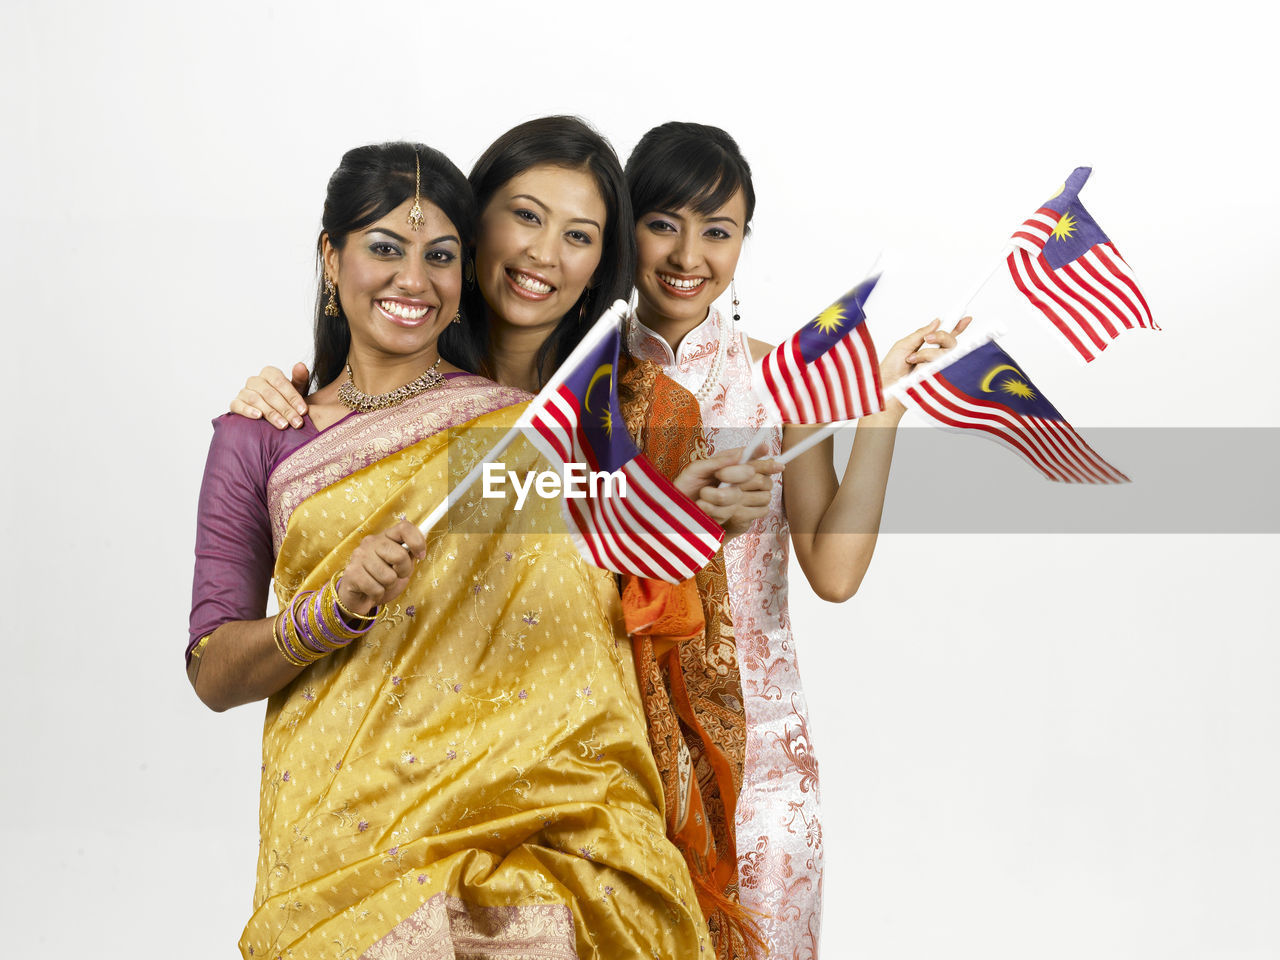 white background, studio shot, smiling, looking at camera, happiness, portrait, front view, standing, indoors, traditional clothing, emotion, holding, women, waist up, togetherness, young adult, cut out, patriotism, females, young women, positive emotion